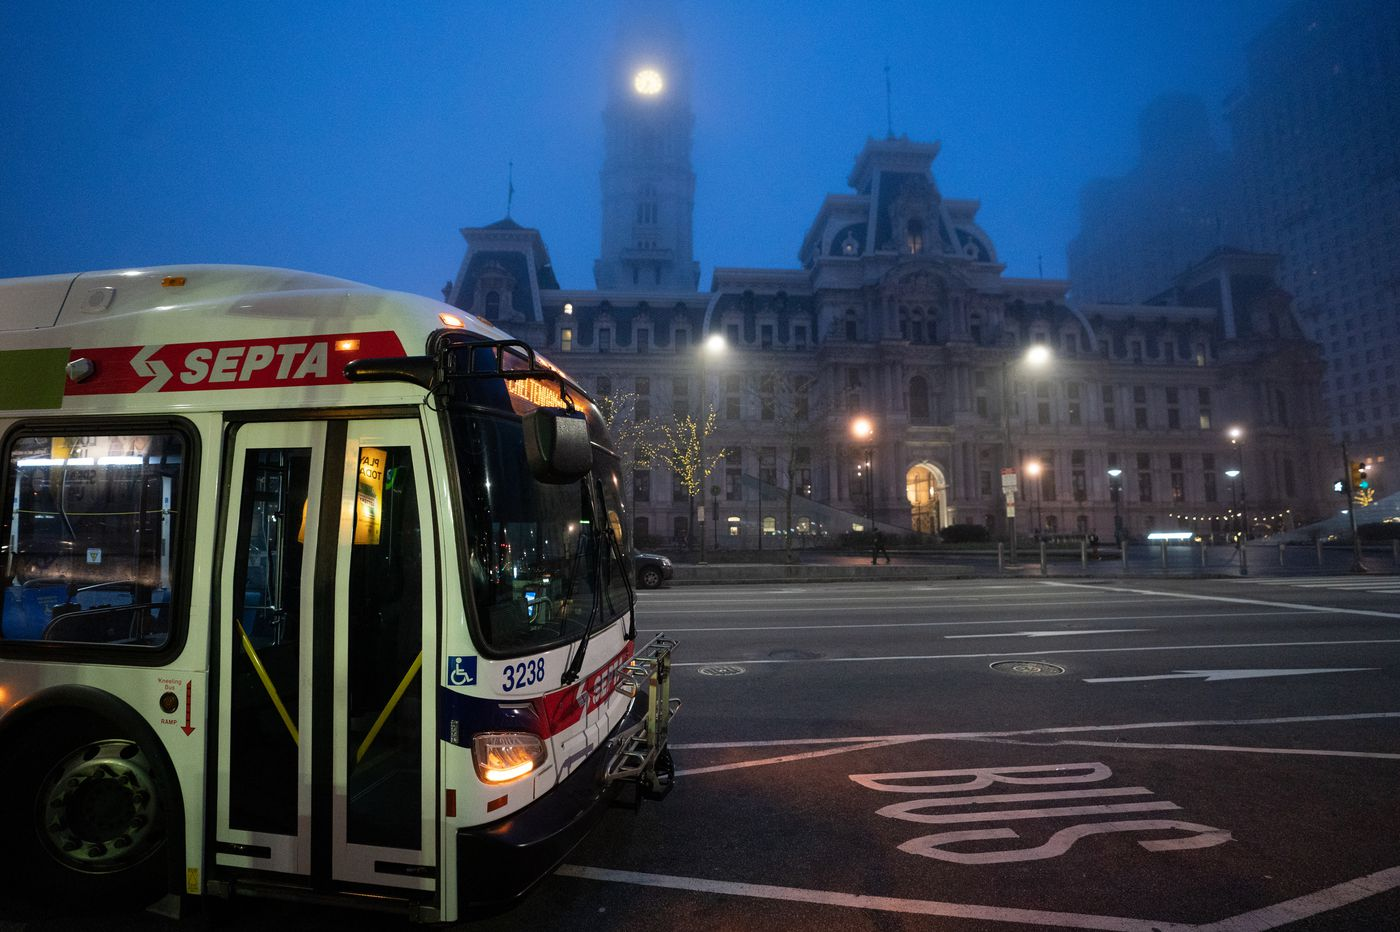 SEPTA is launching a COVID-19 memorial fund following seven employee deaths